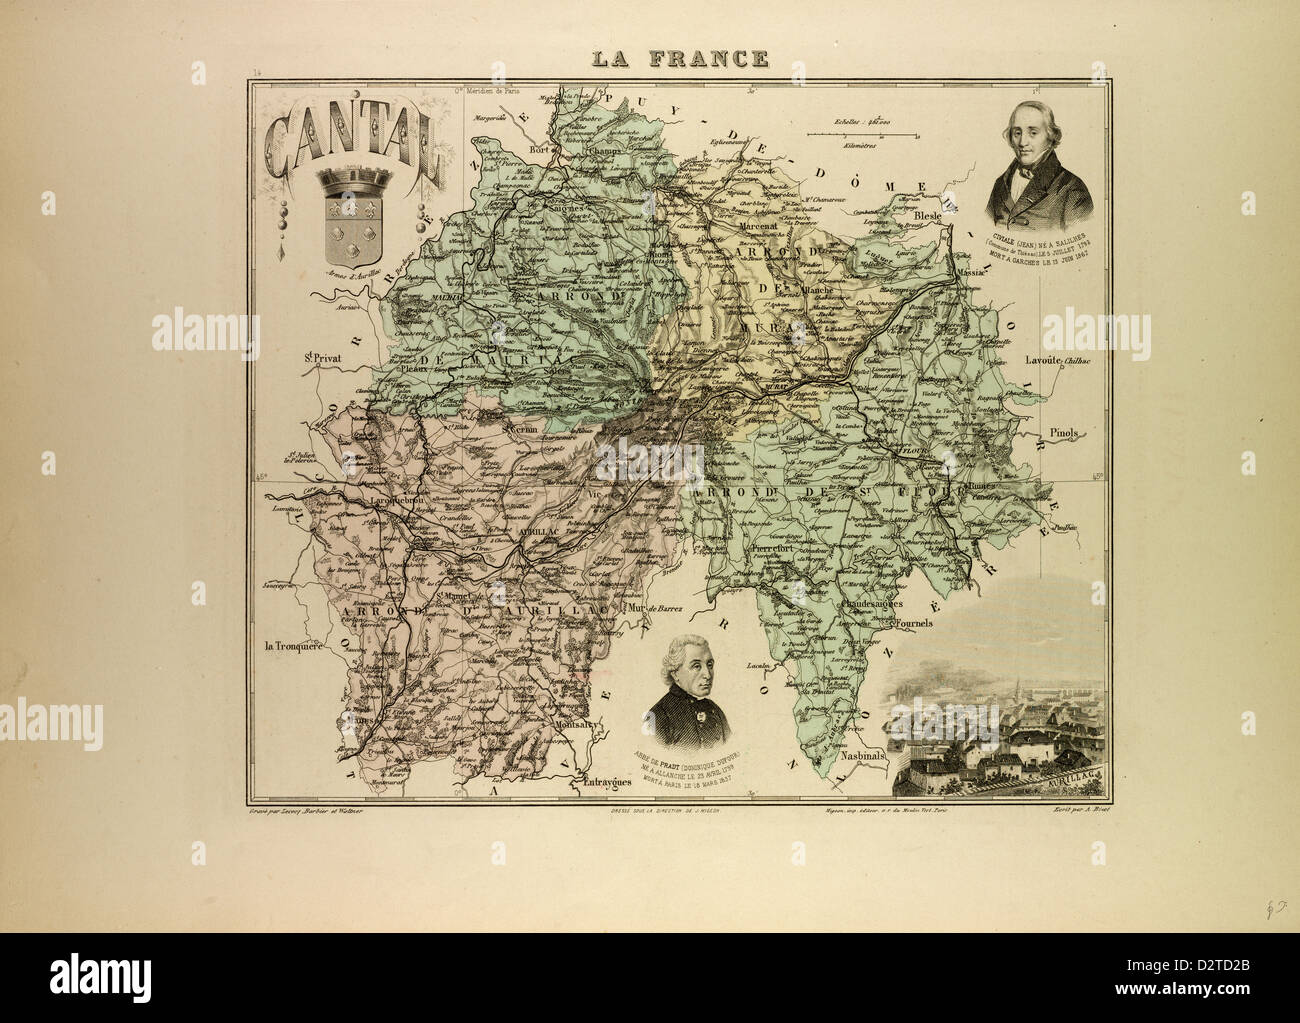 MAP OF CANTAL 1896 FRANCE - Stock Image